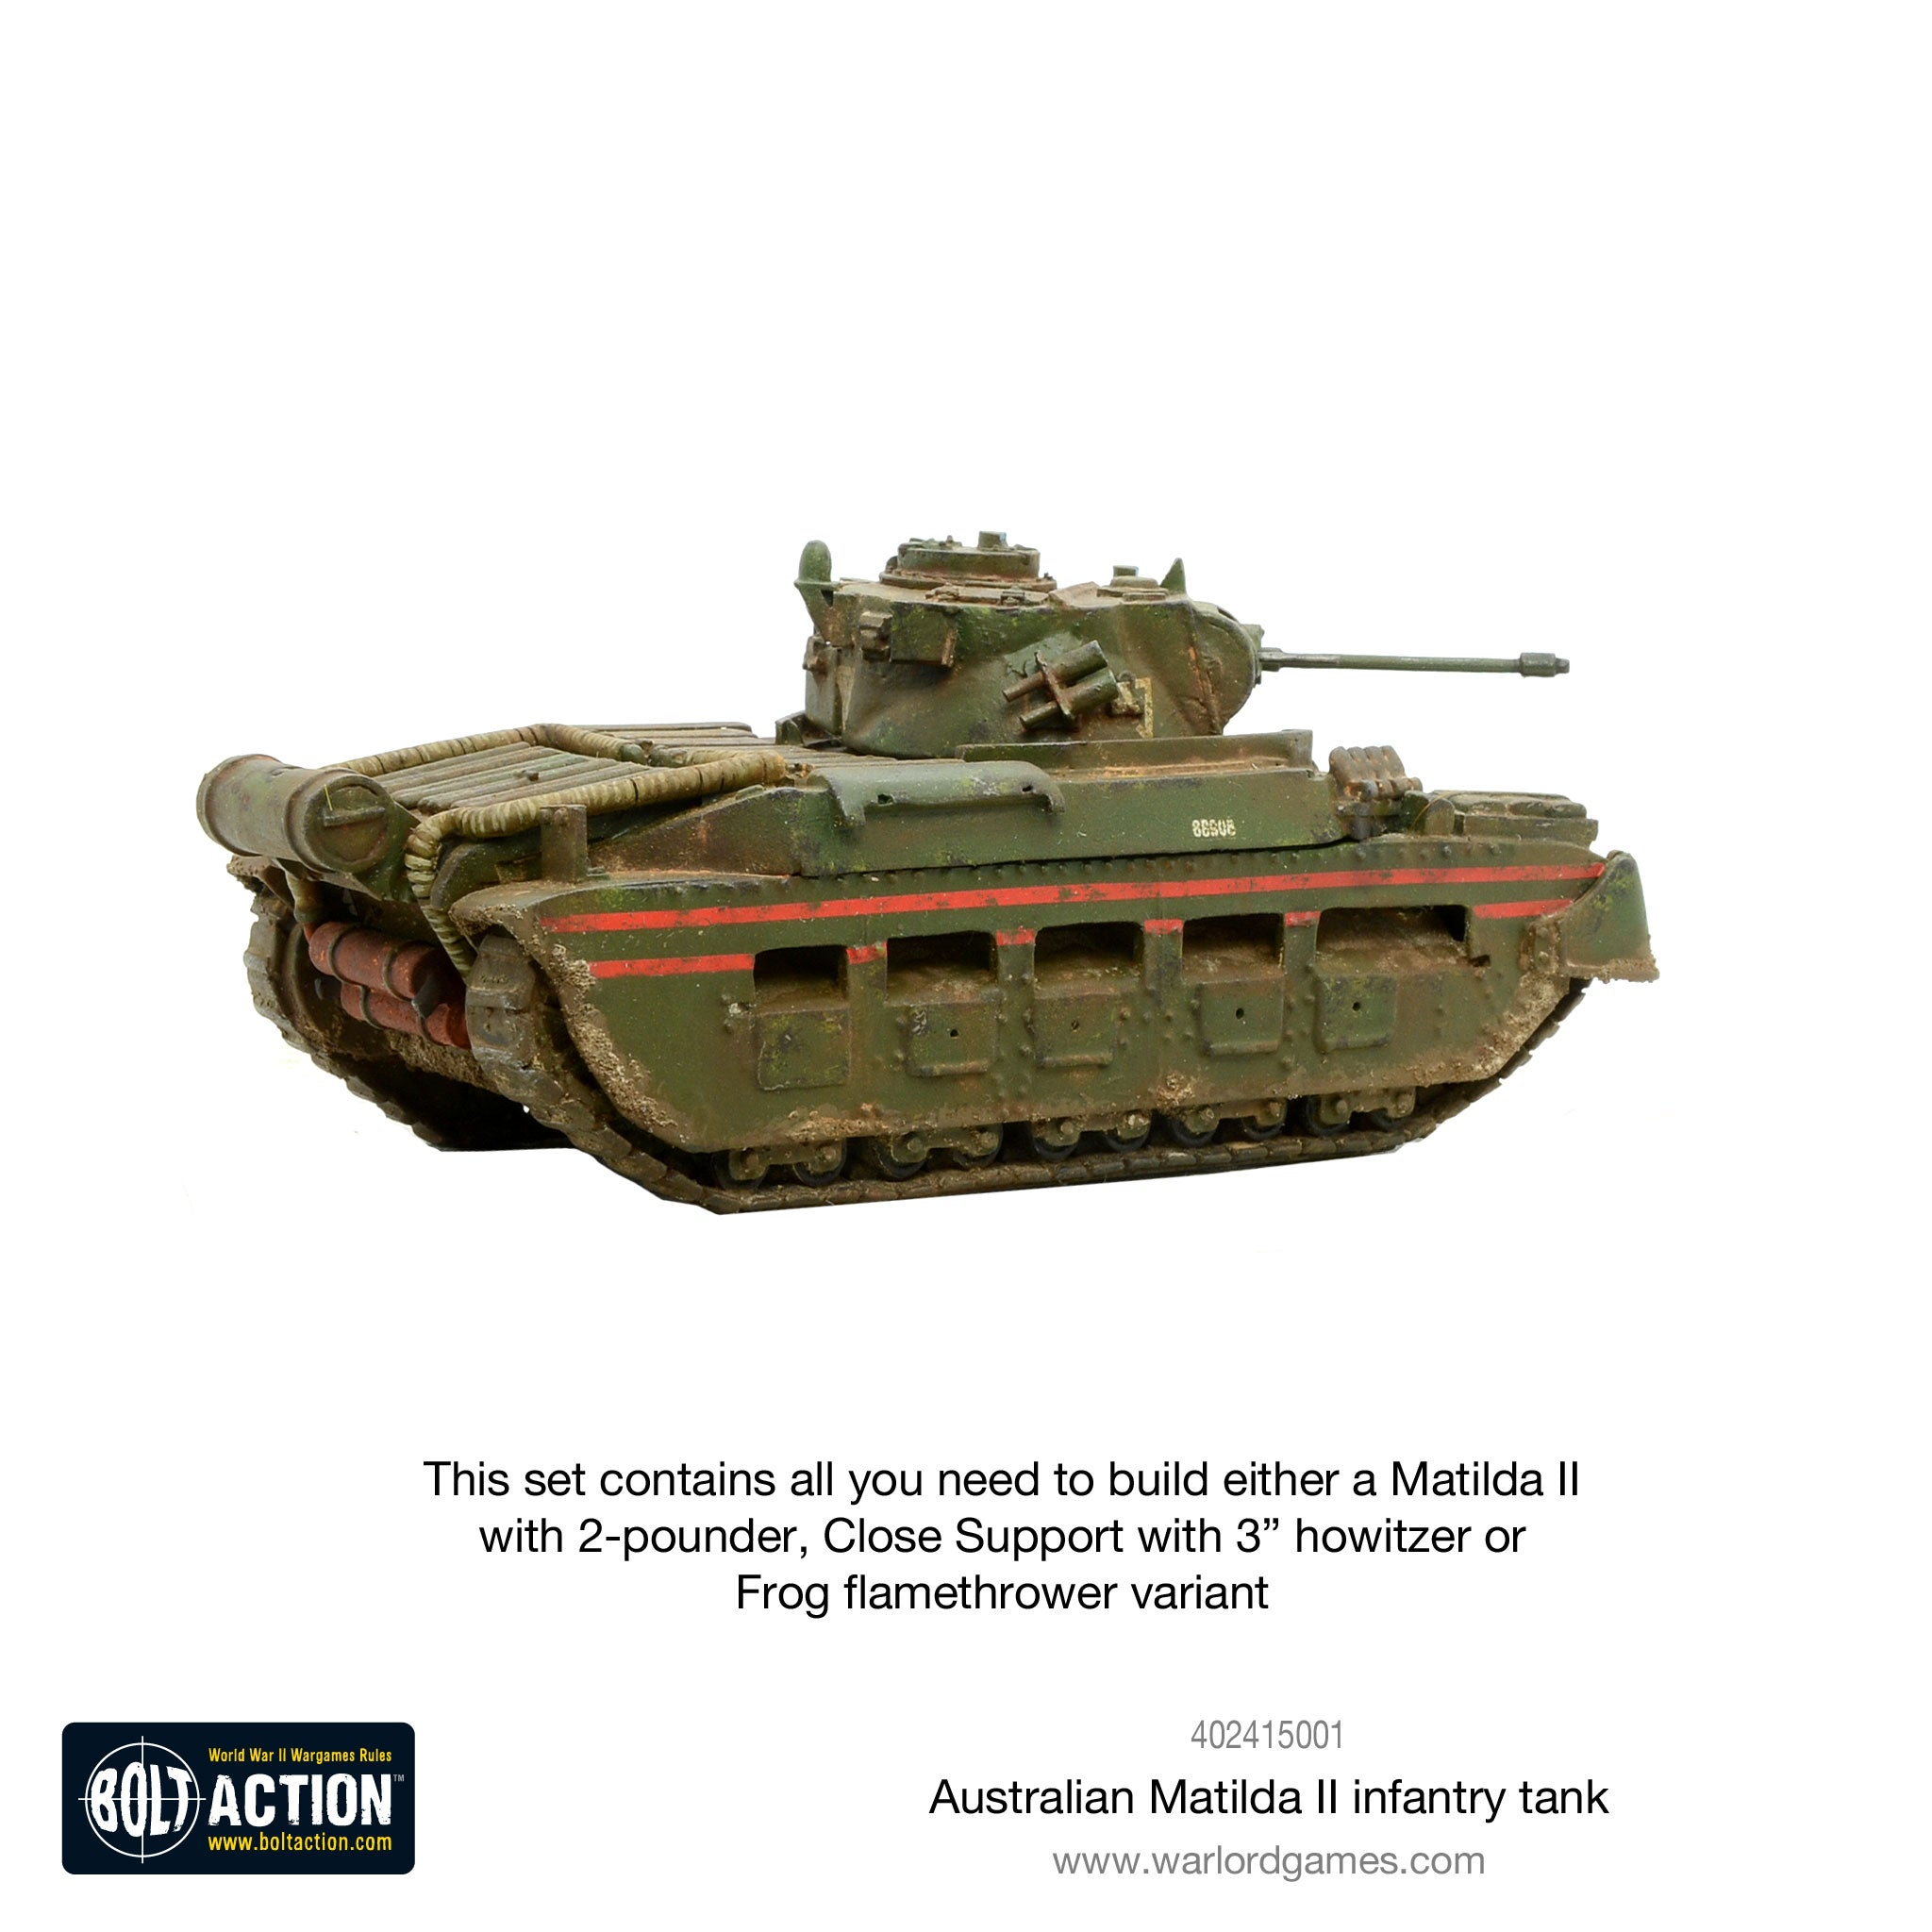 Matilda - tank of the army of Great Britain. Tank Matilda IV - World of Tanks Guide 38